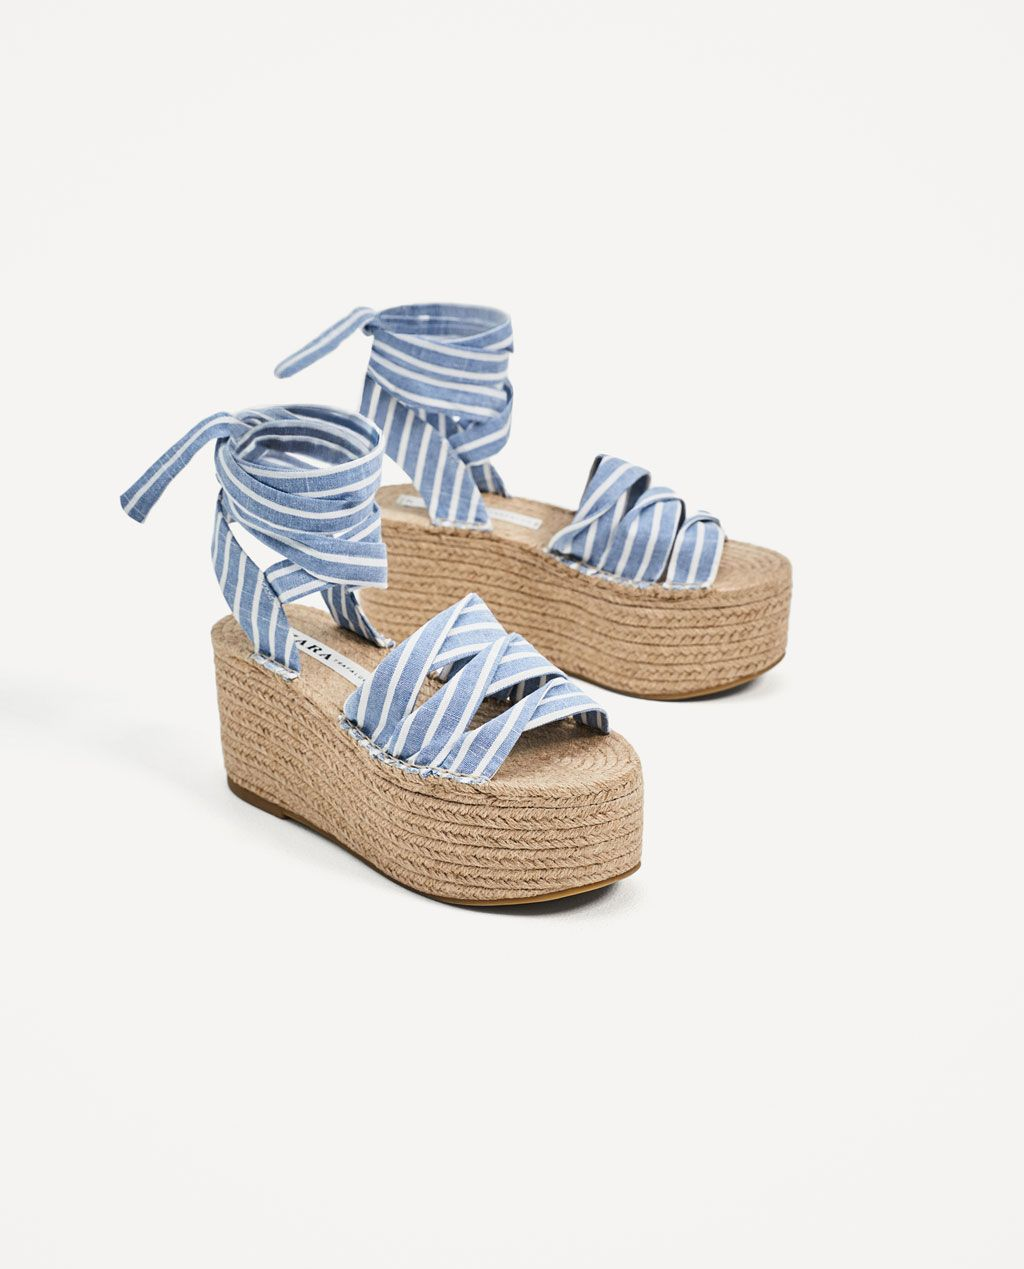 2eeab5a7a86 TIED JUTE PLATFORM WEDGES-Espadrilles-SHOES-WOMAN | ZARA United States